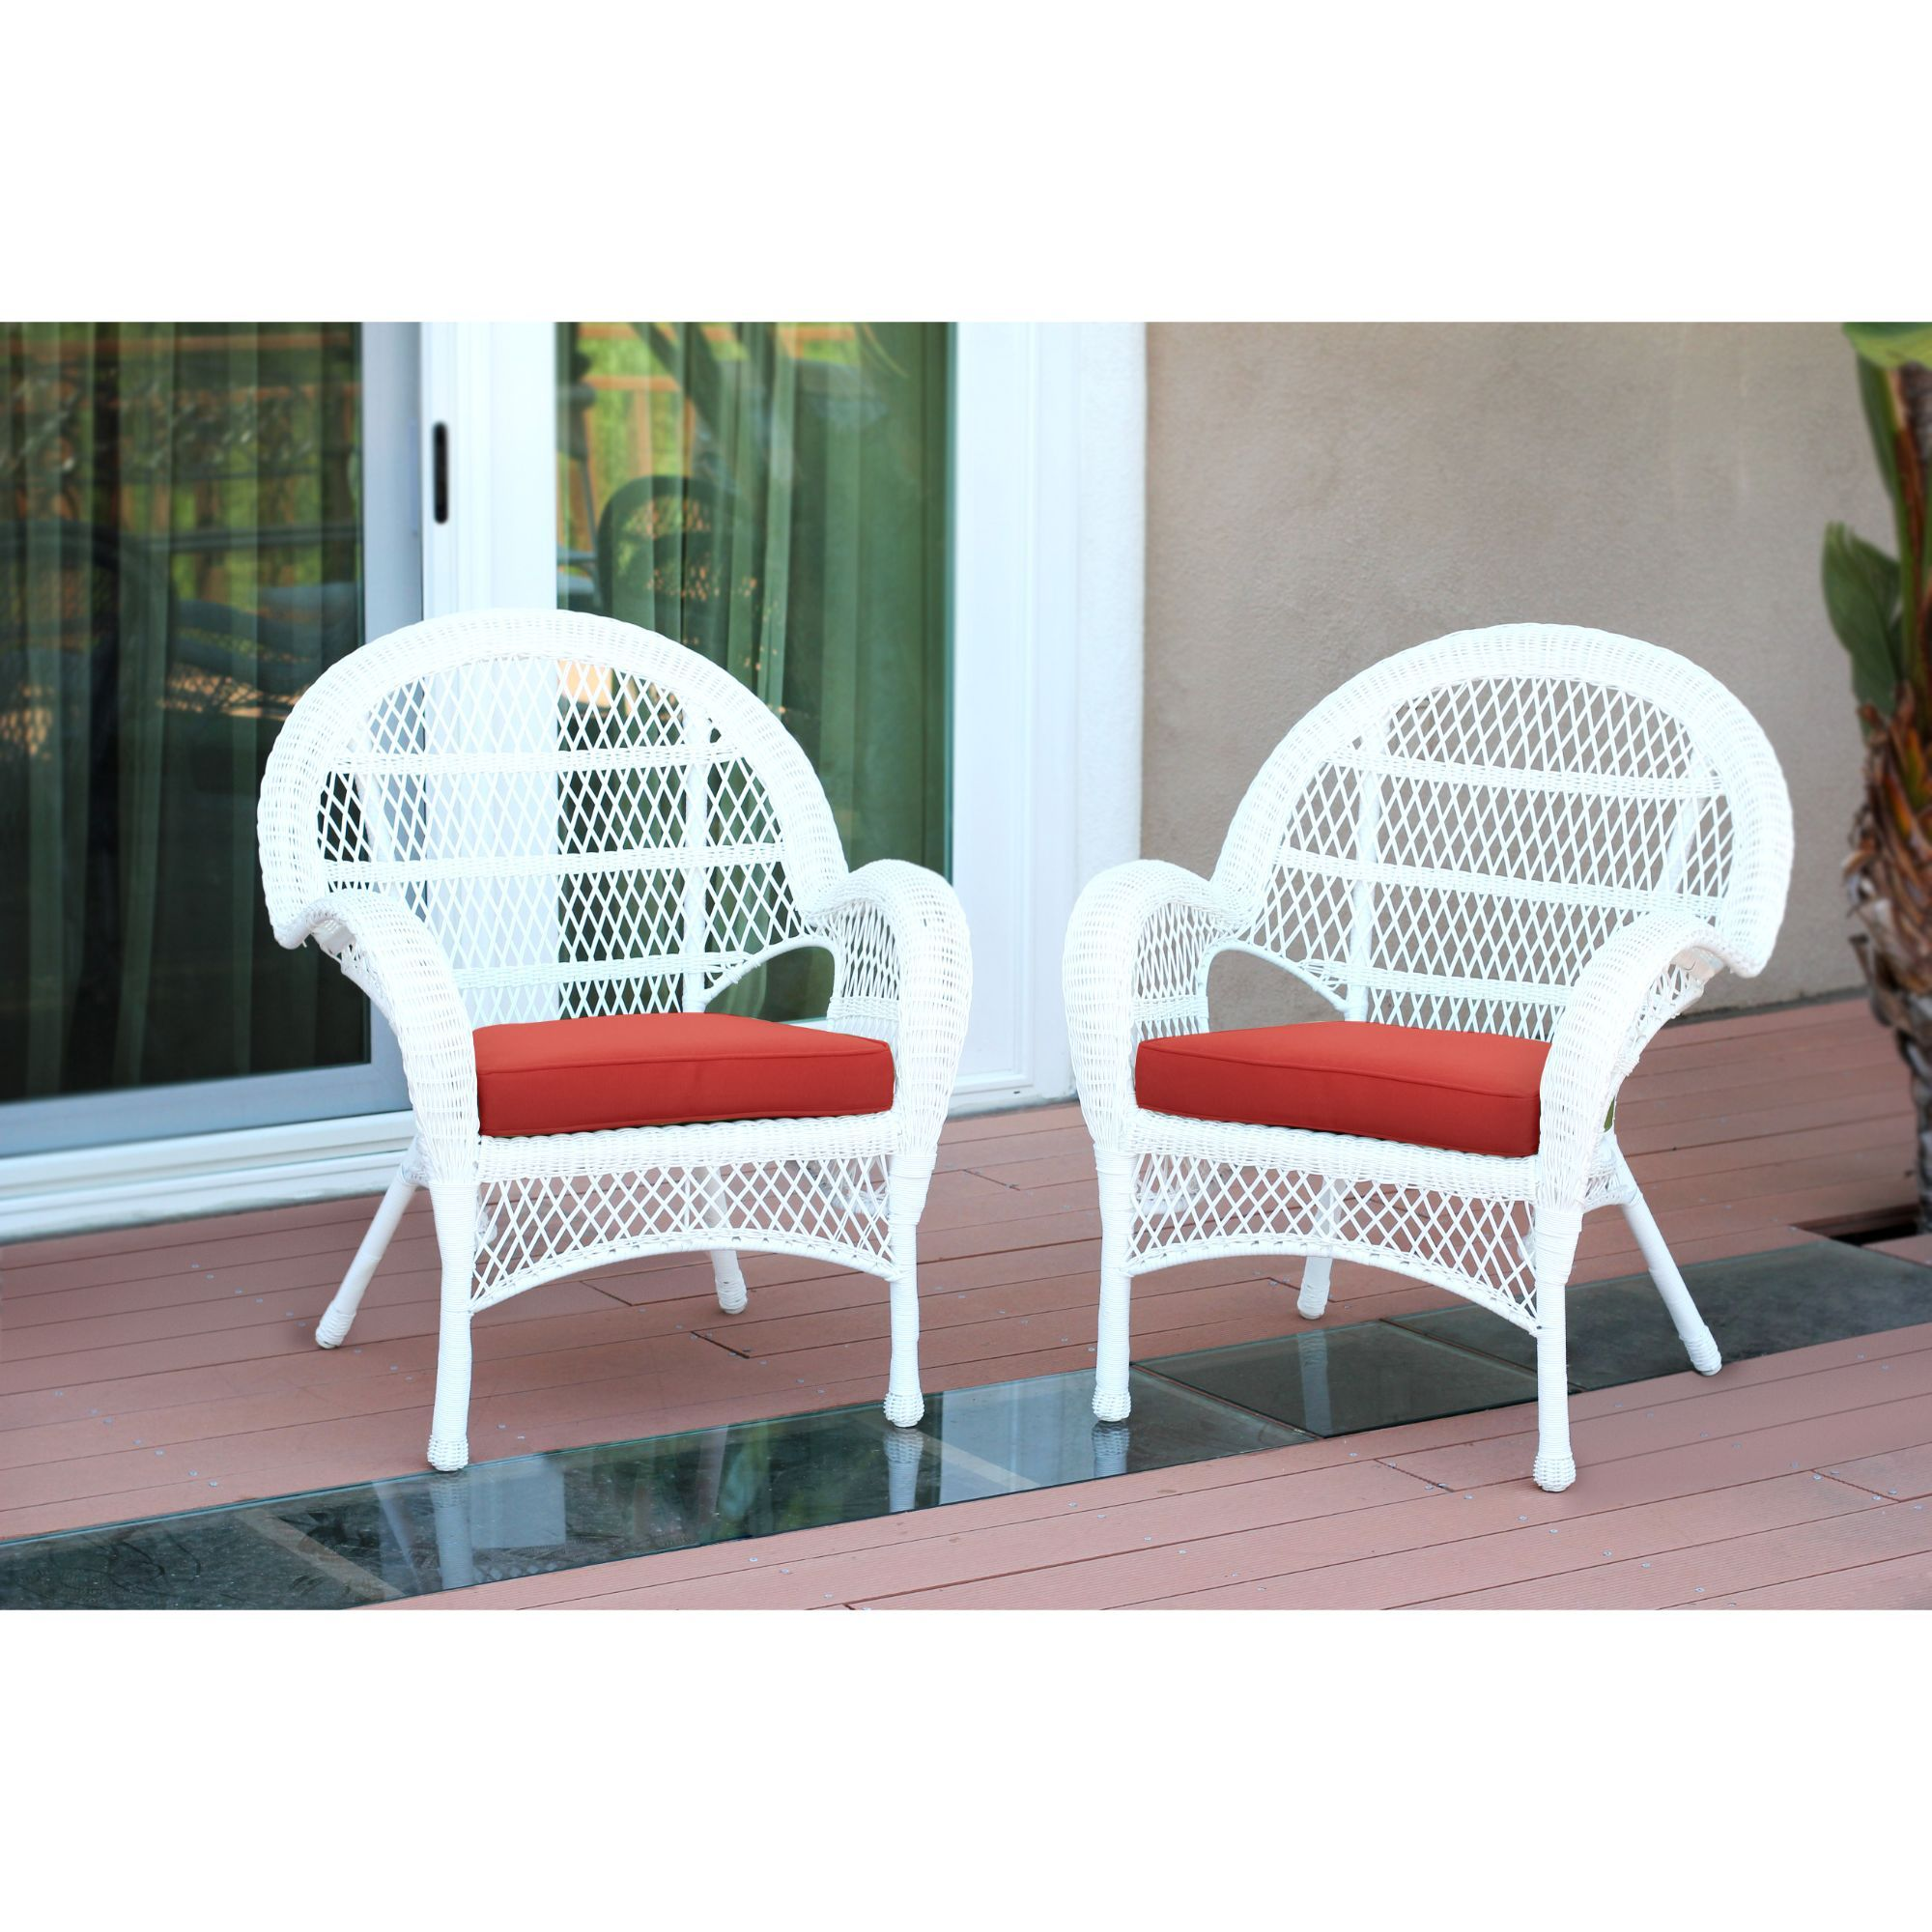 Set Of 4 White Wicker Outdoor Furniture Patio Chairs Red Cushions Wicker Patio Chairs White Outdoor Furniture Wicker Dining Chairs